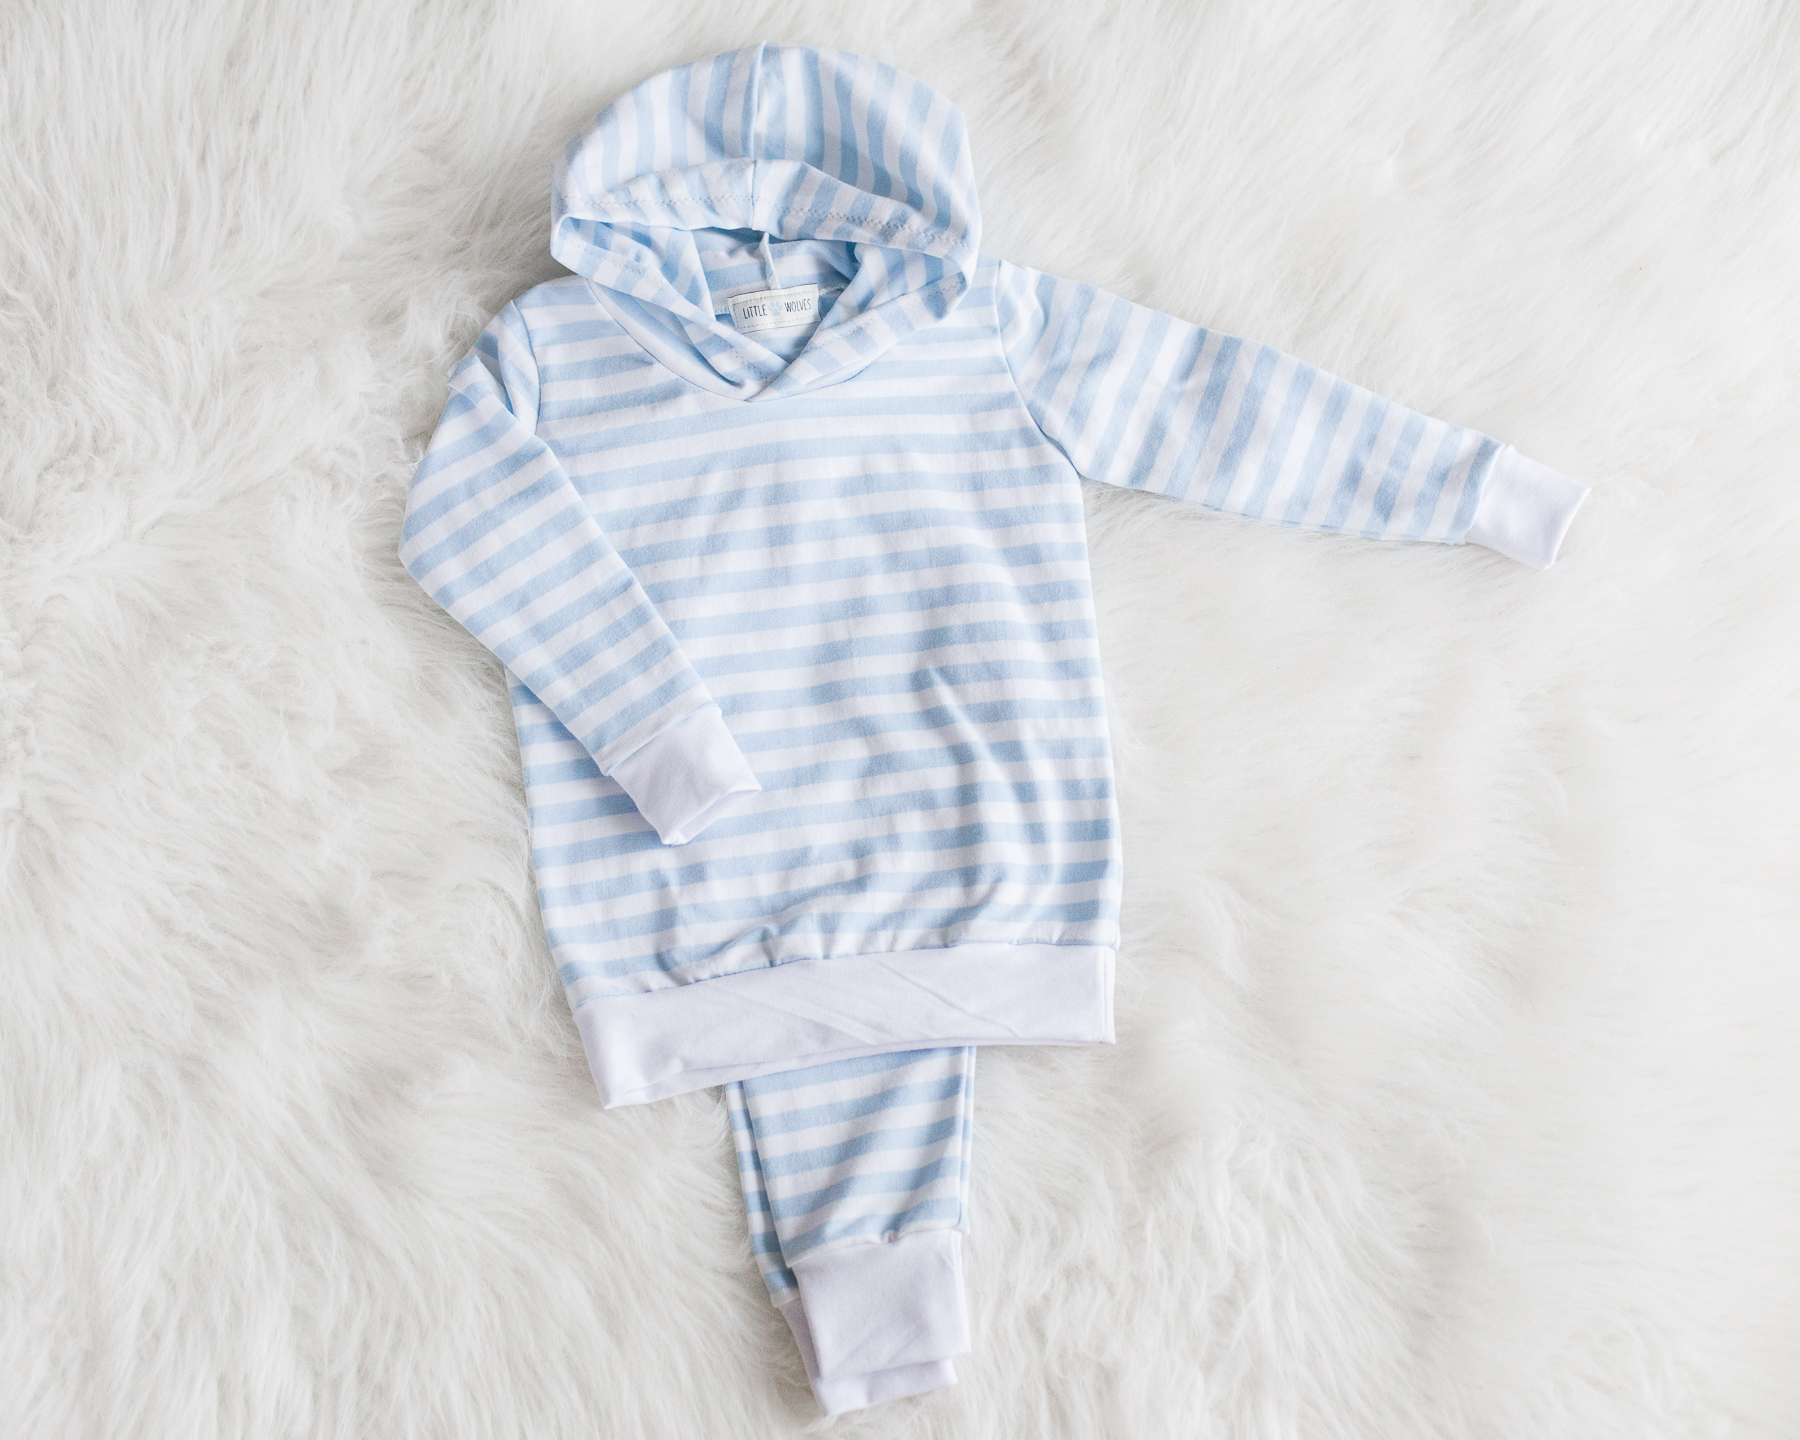 LITTLE WOLVES - Little Wolves is handmade children's apparel using ultra soft and stretchy bamboo fabric and organic cotton. Rompers, cuff pants and hoodies are stylish but most importantly comfortable.